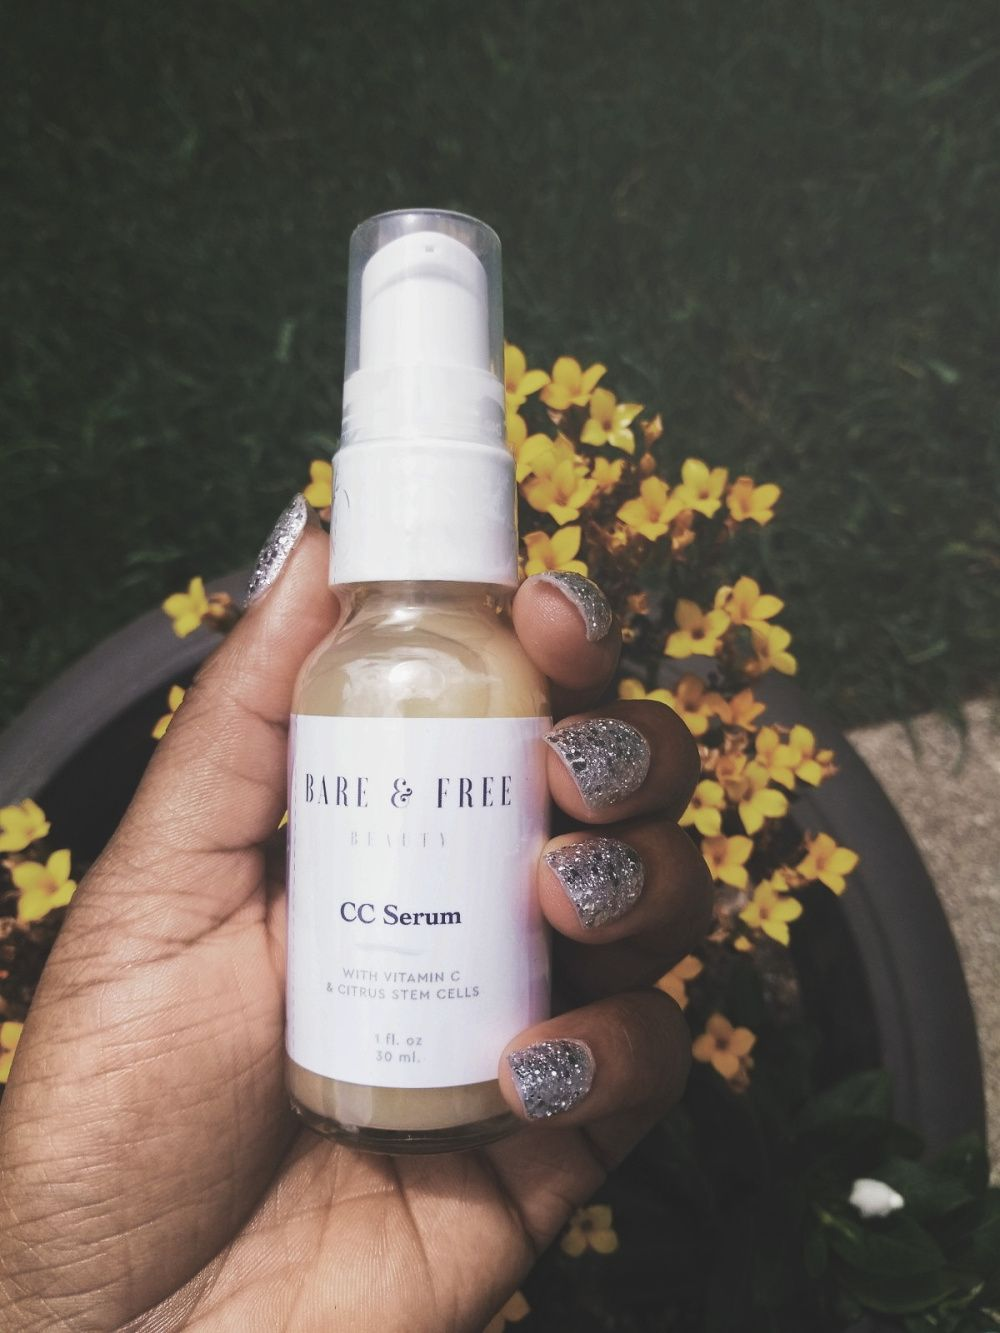 Bare free beauty vitamin c serum review in 2020 free